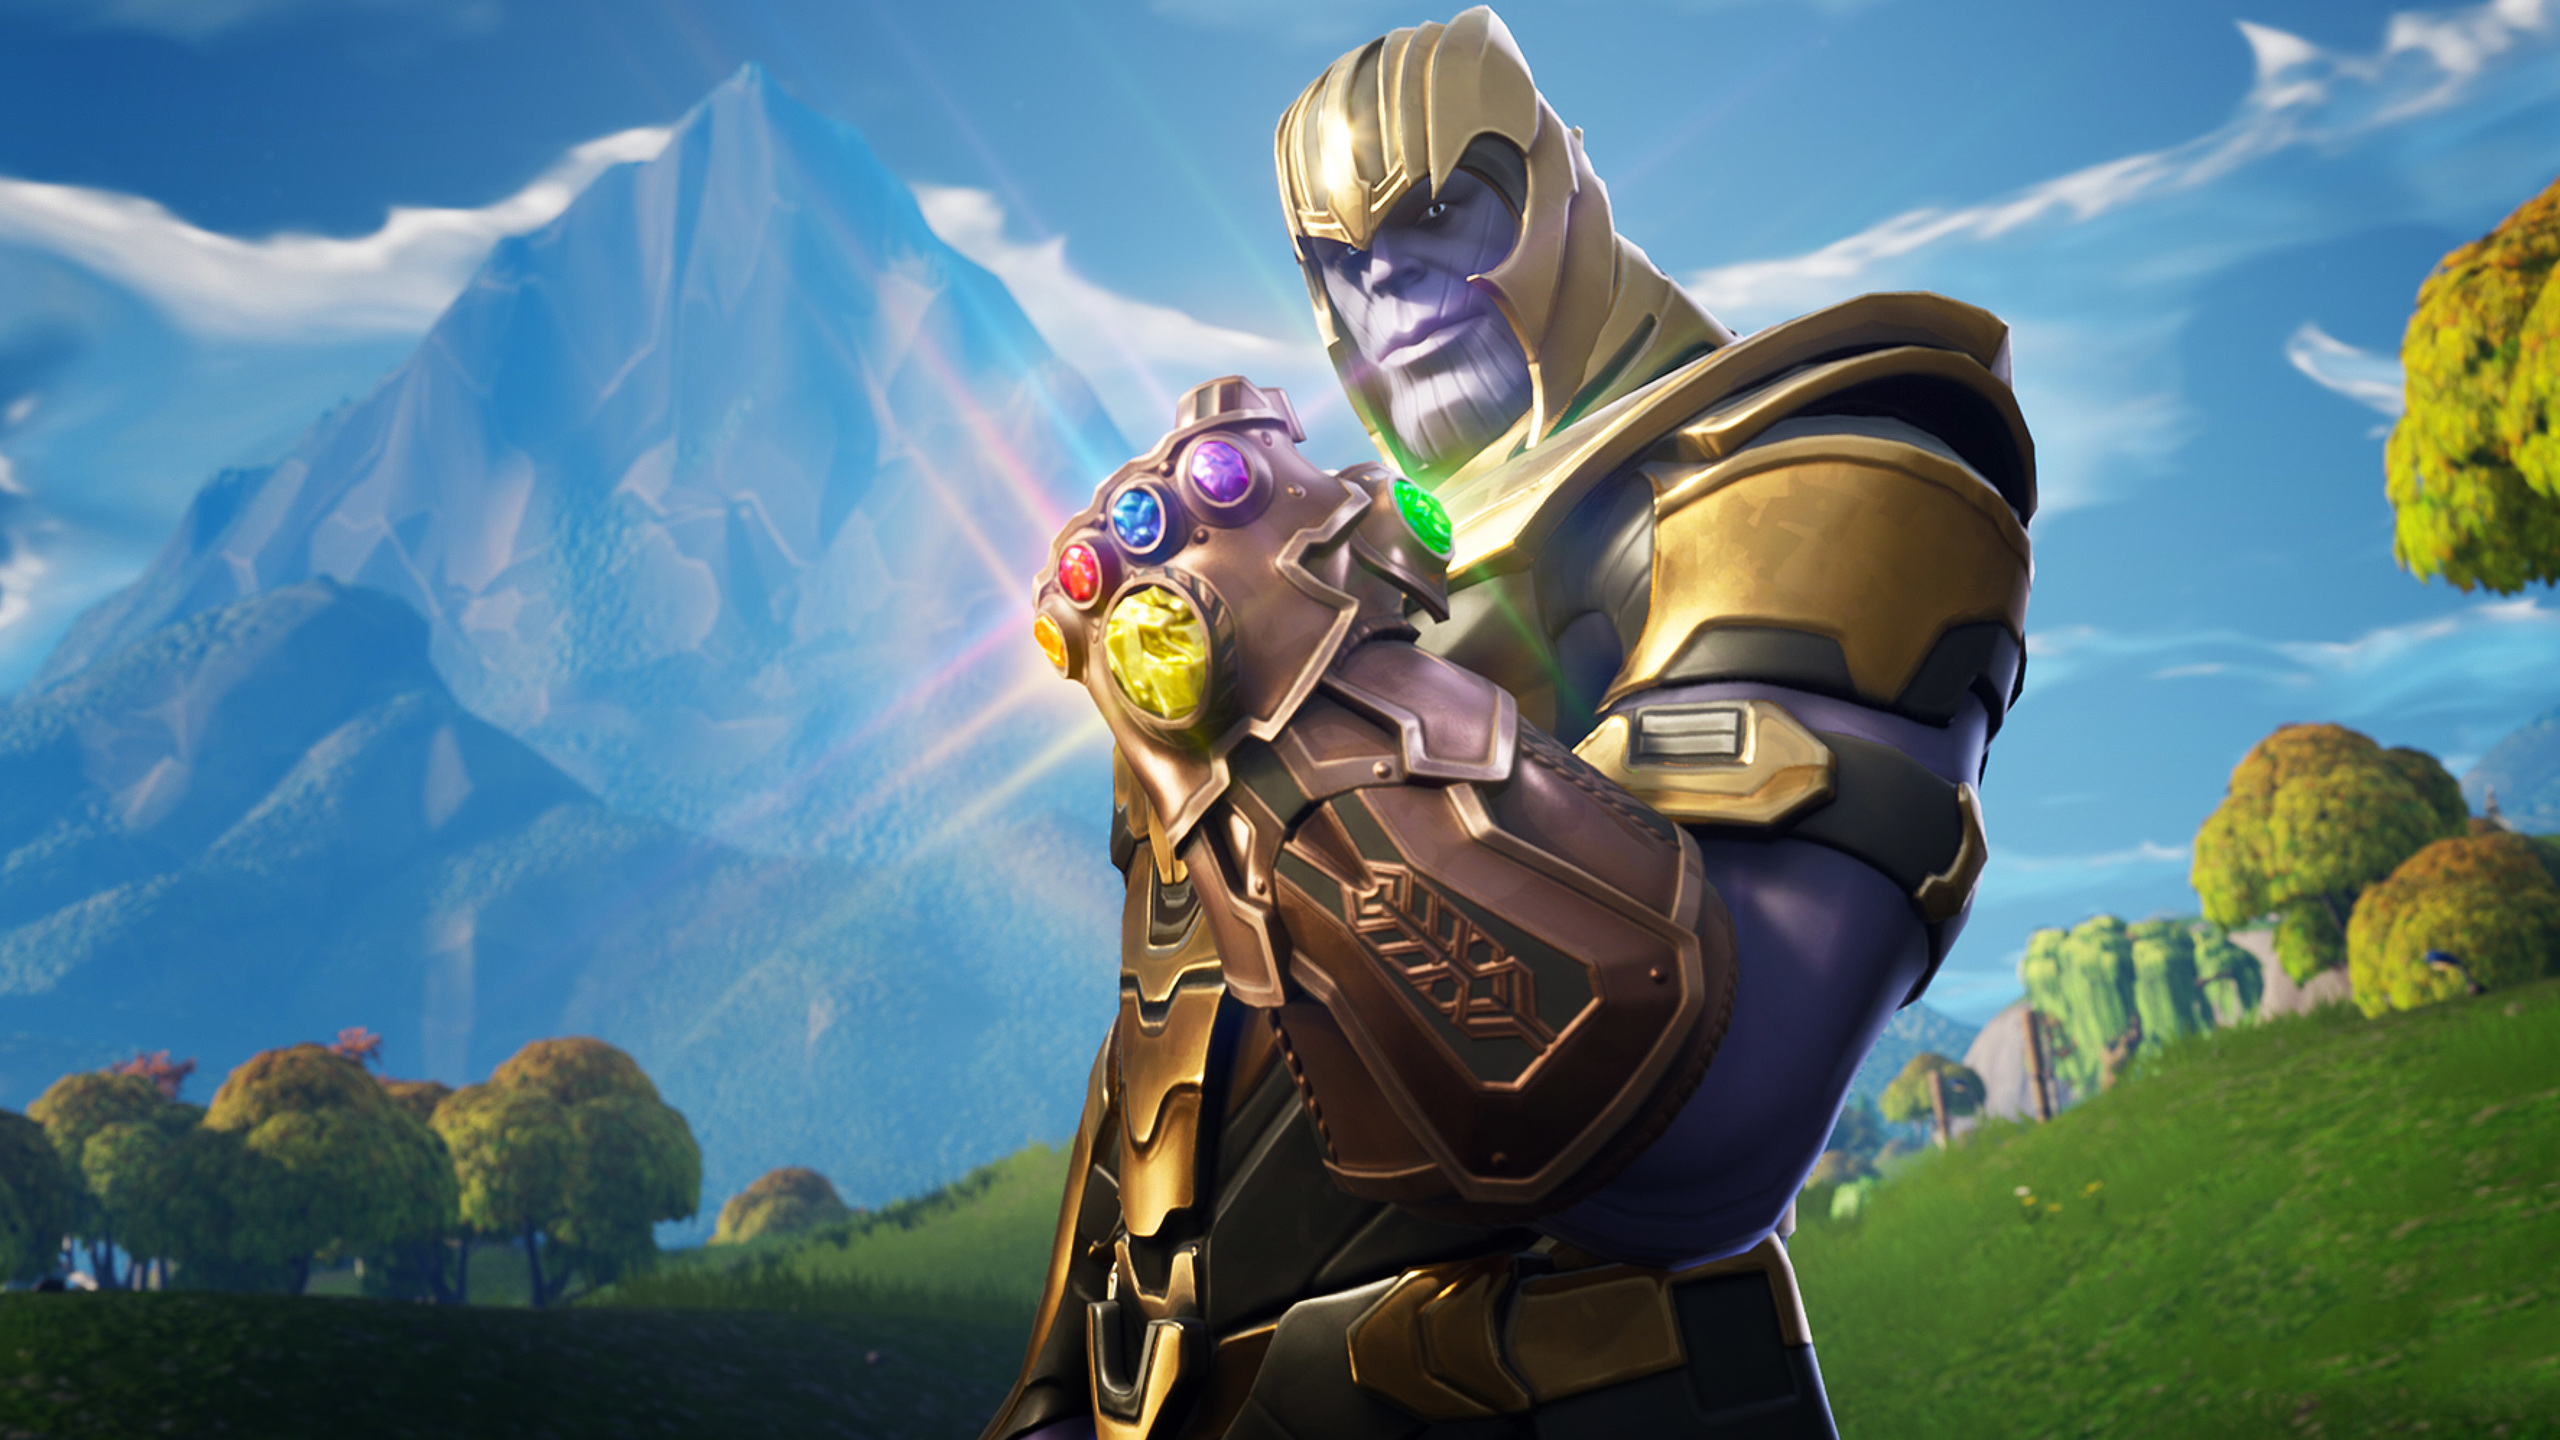 Free Download 2560x1440 Thanos In Fortnite Battle Royale